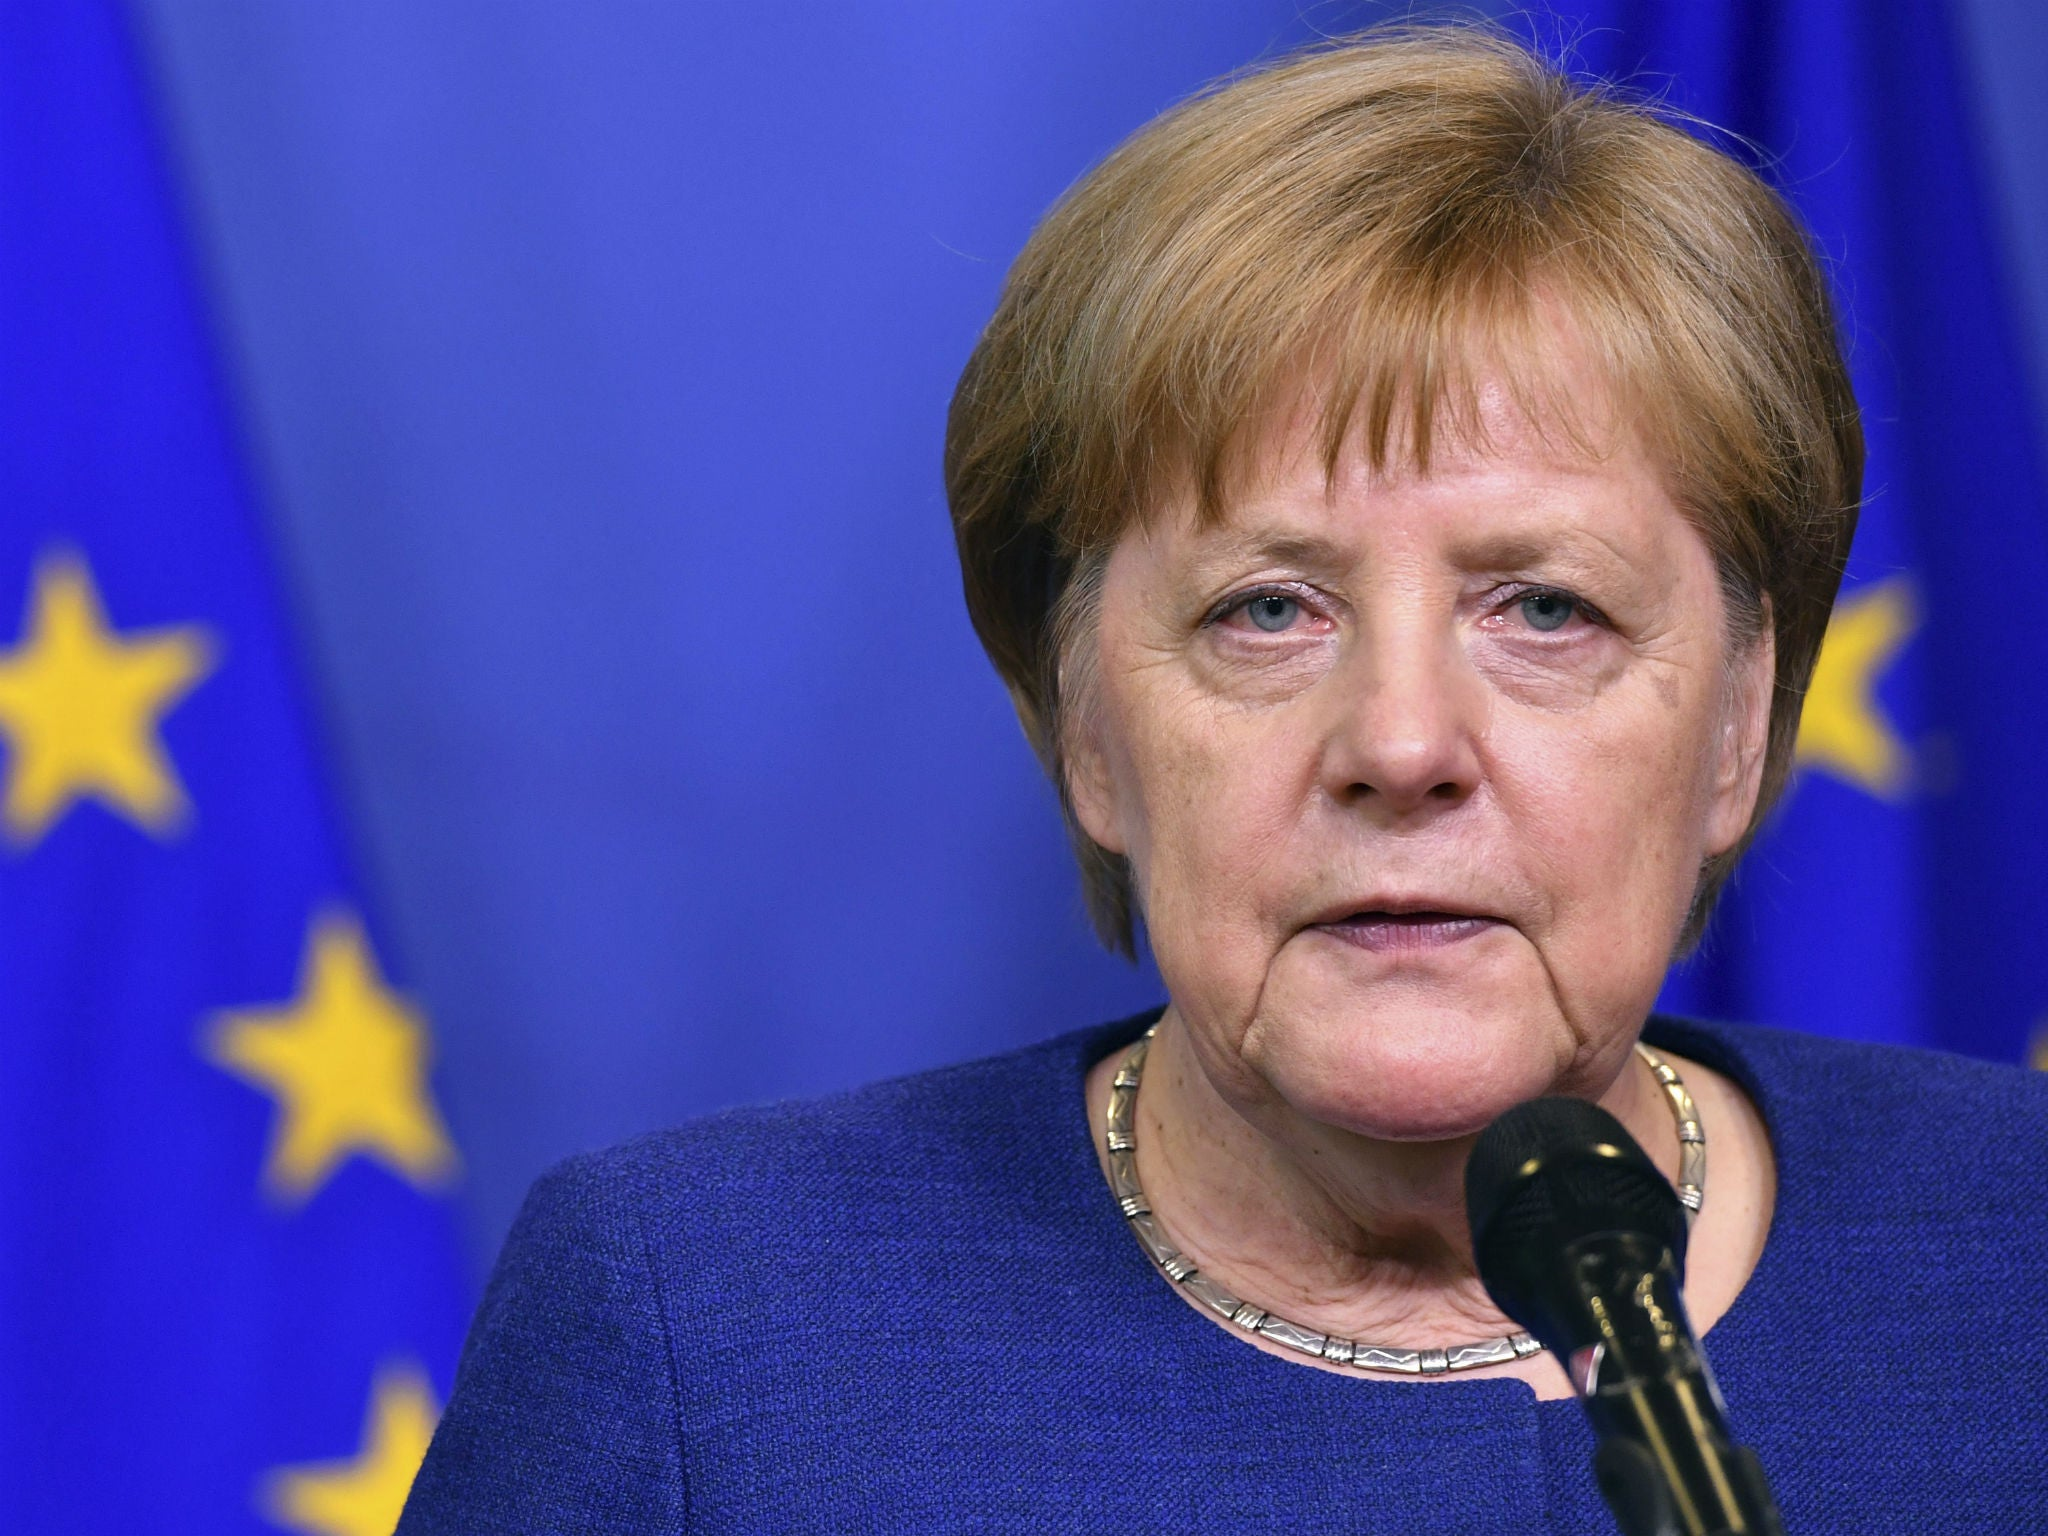 After England's exit from the EU, Merkel saw a real opportunity to take the place of the first 71